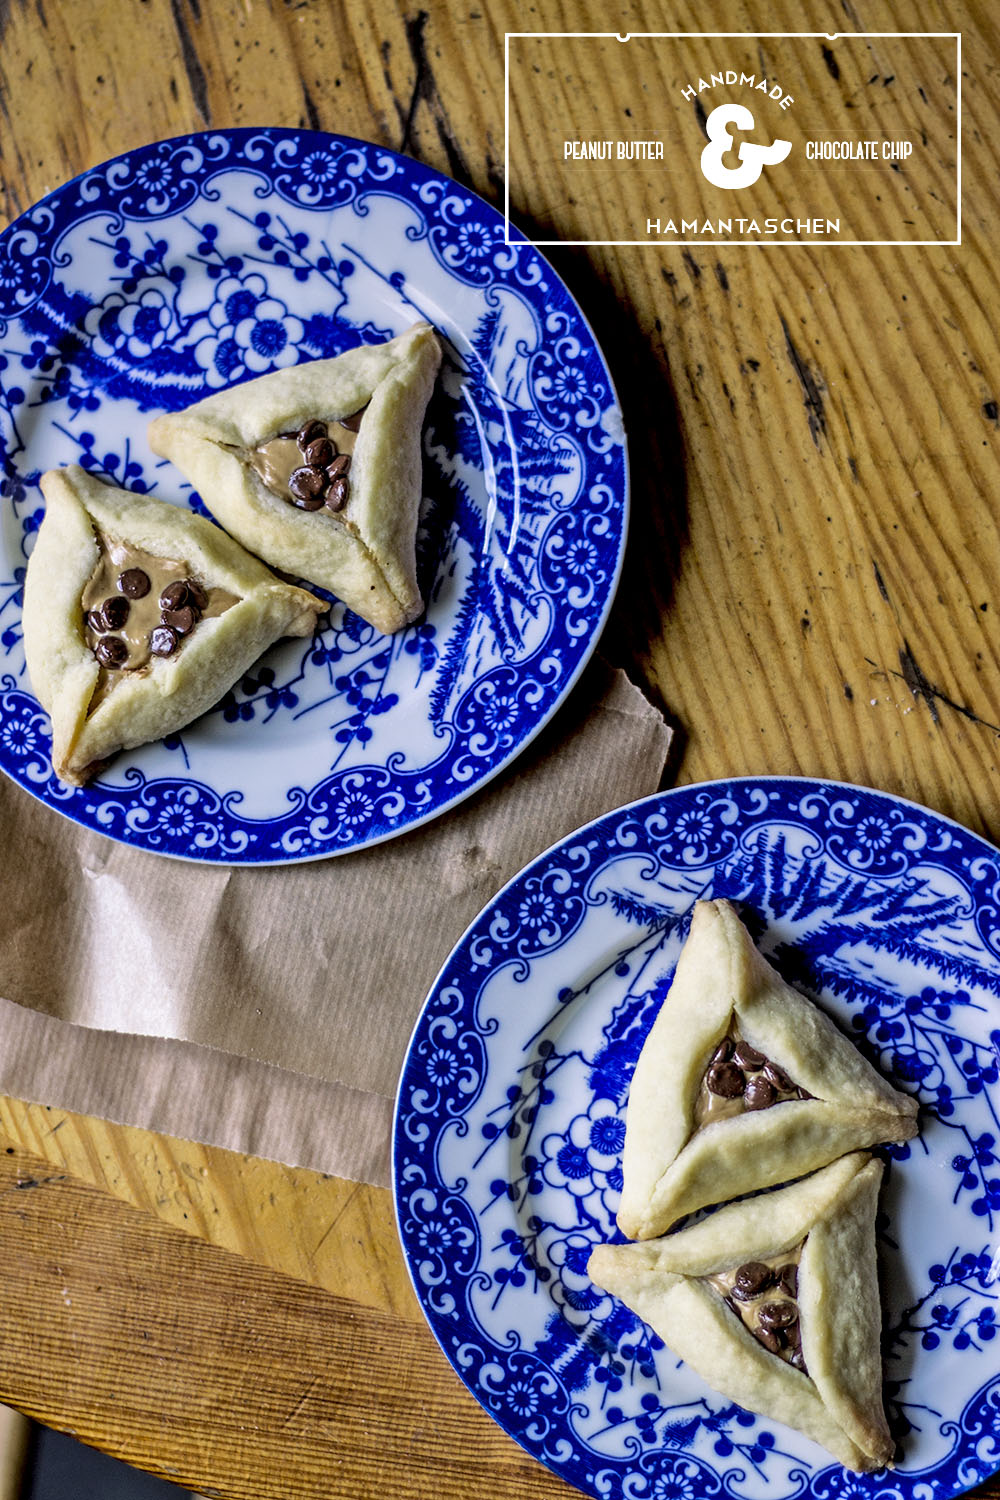 Peanut Butter and Chocolate Chip Hamantaschen